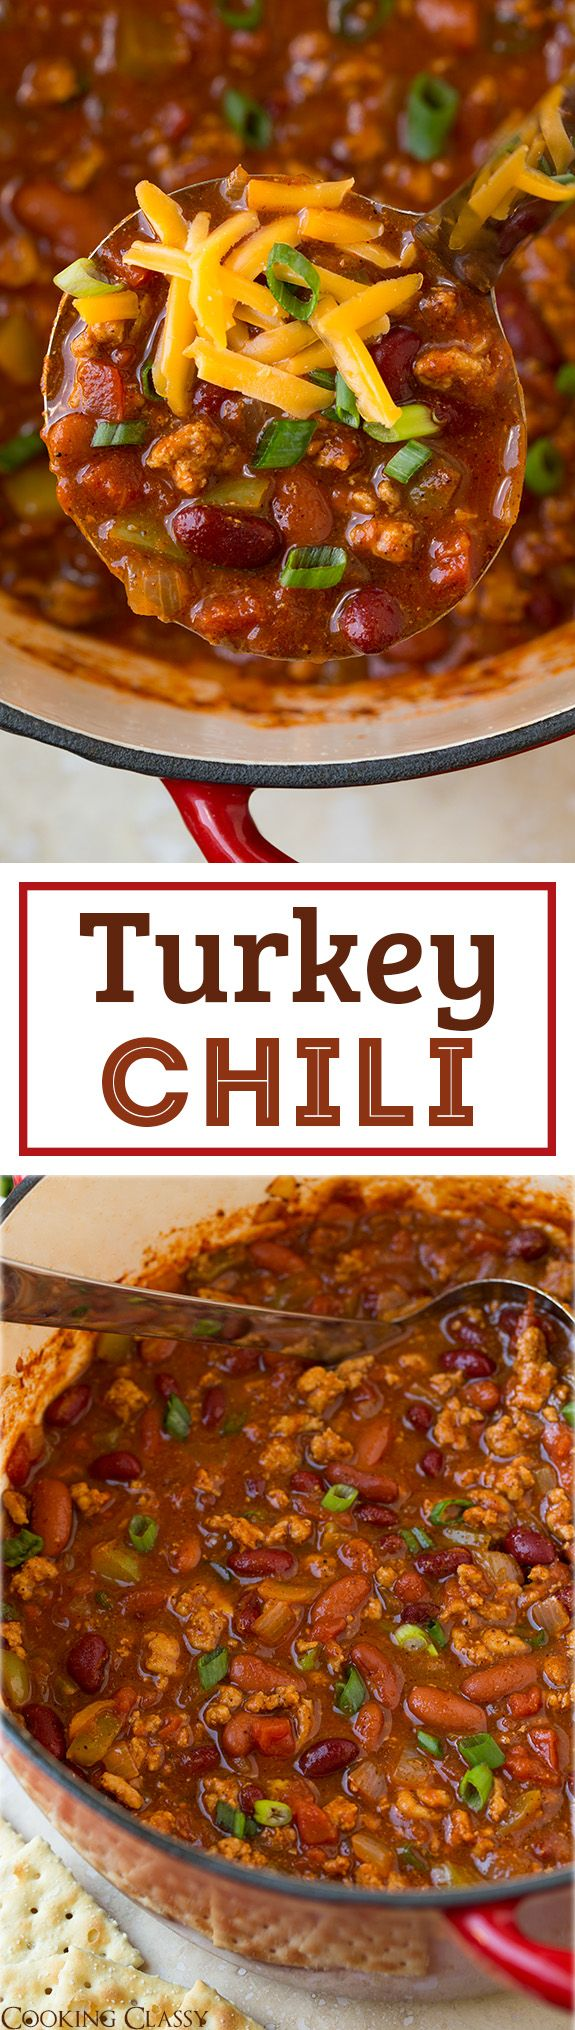 Turkey Chili - a lighter chili that tastes just as good as the beefy version! Hearty, comforting and totally delicious!